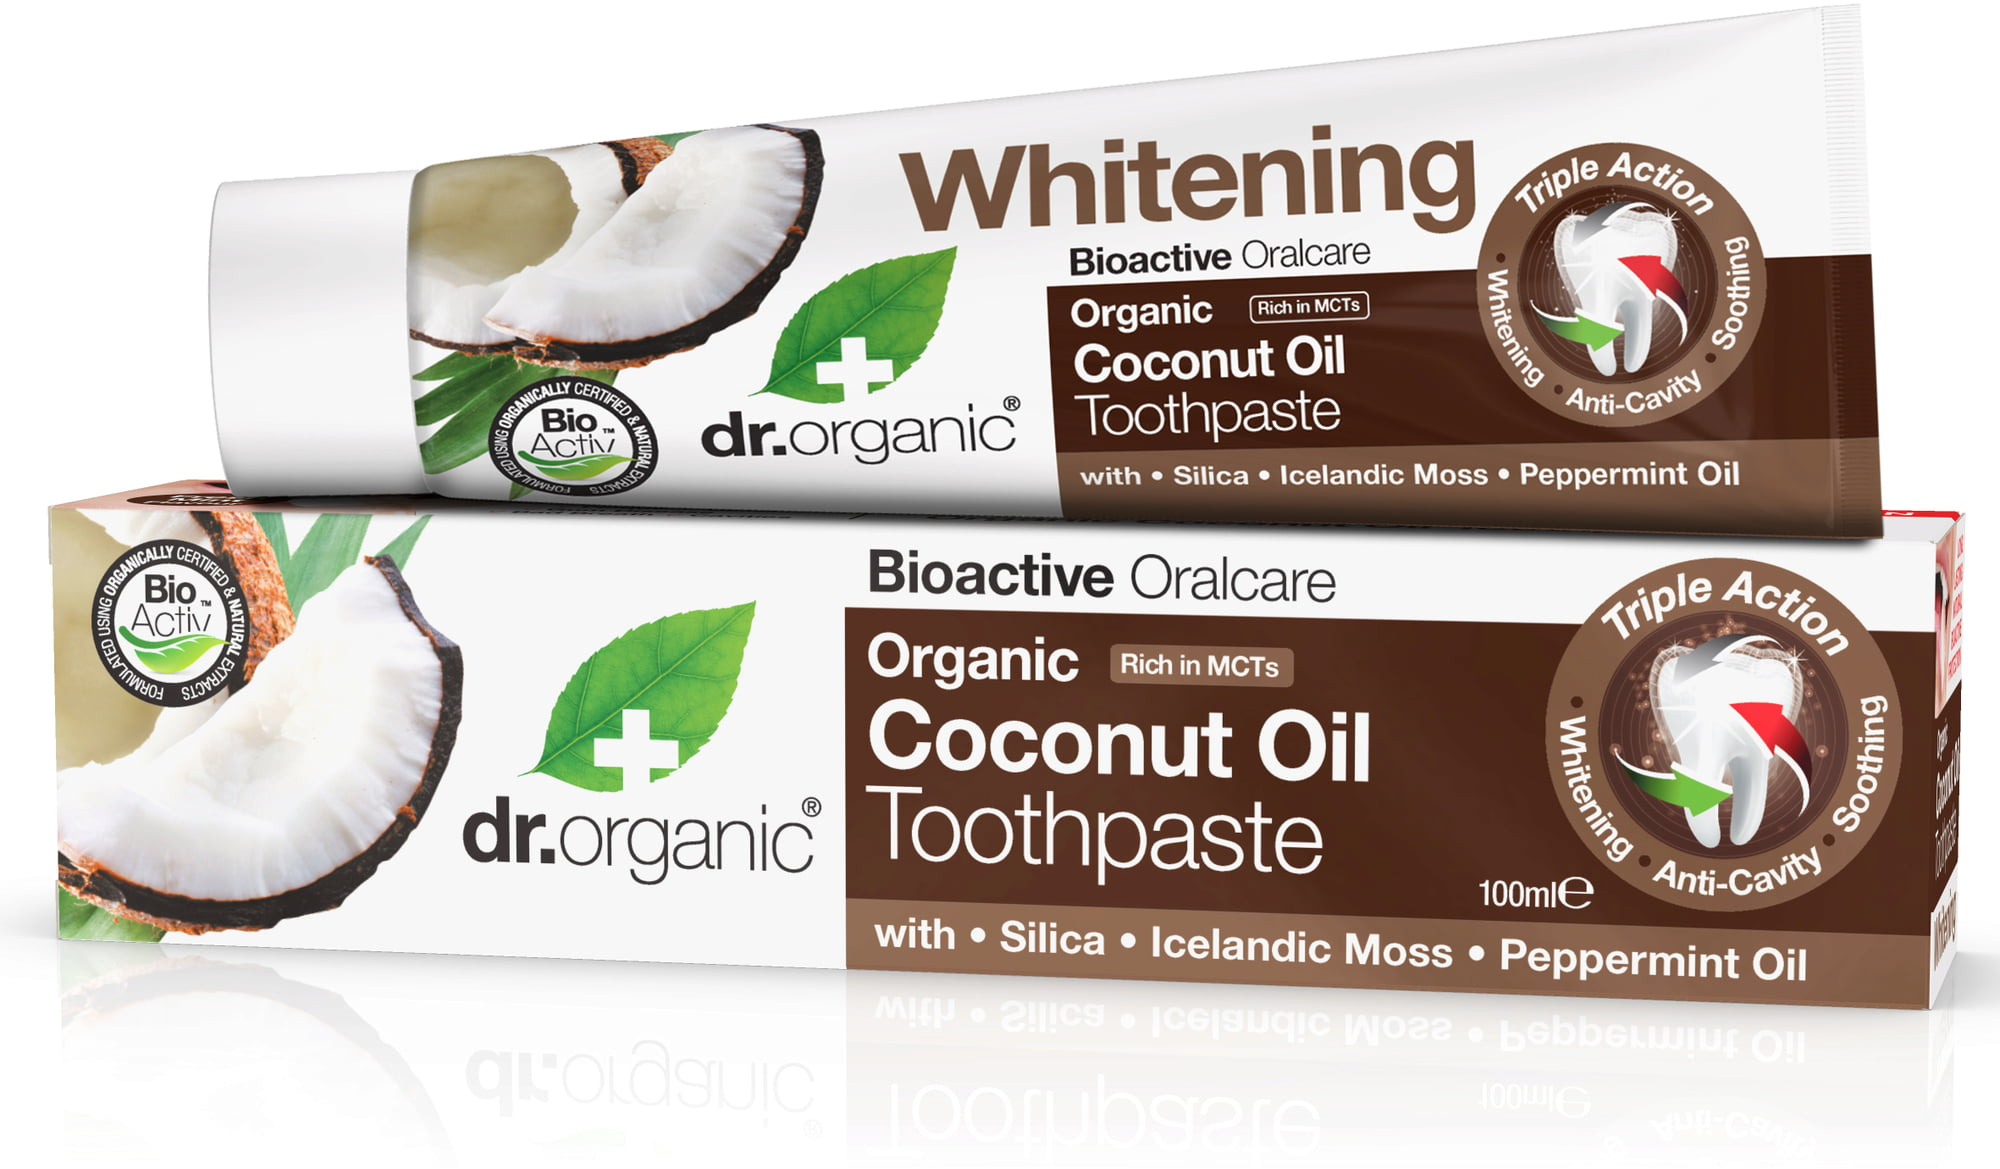 Dr.Organic Coconut Oil Toothpaste